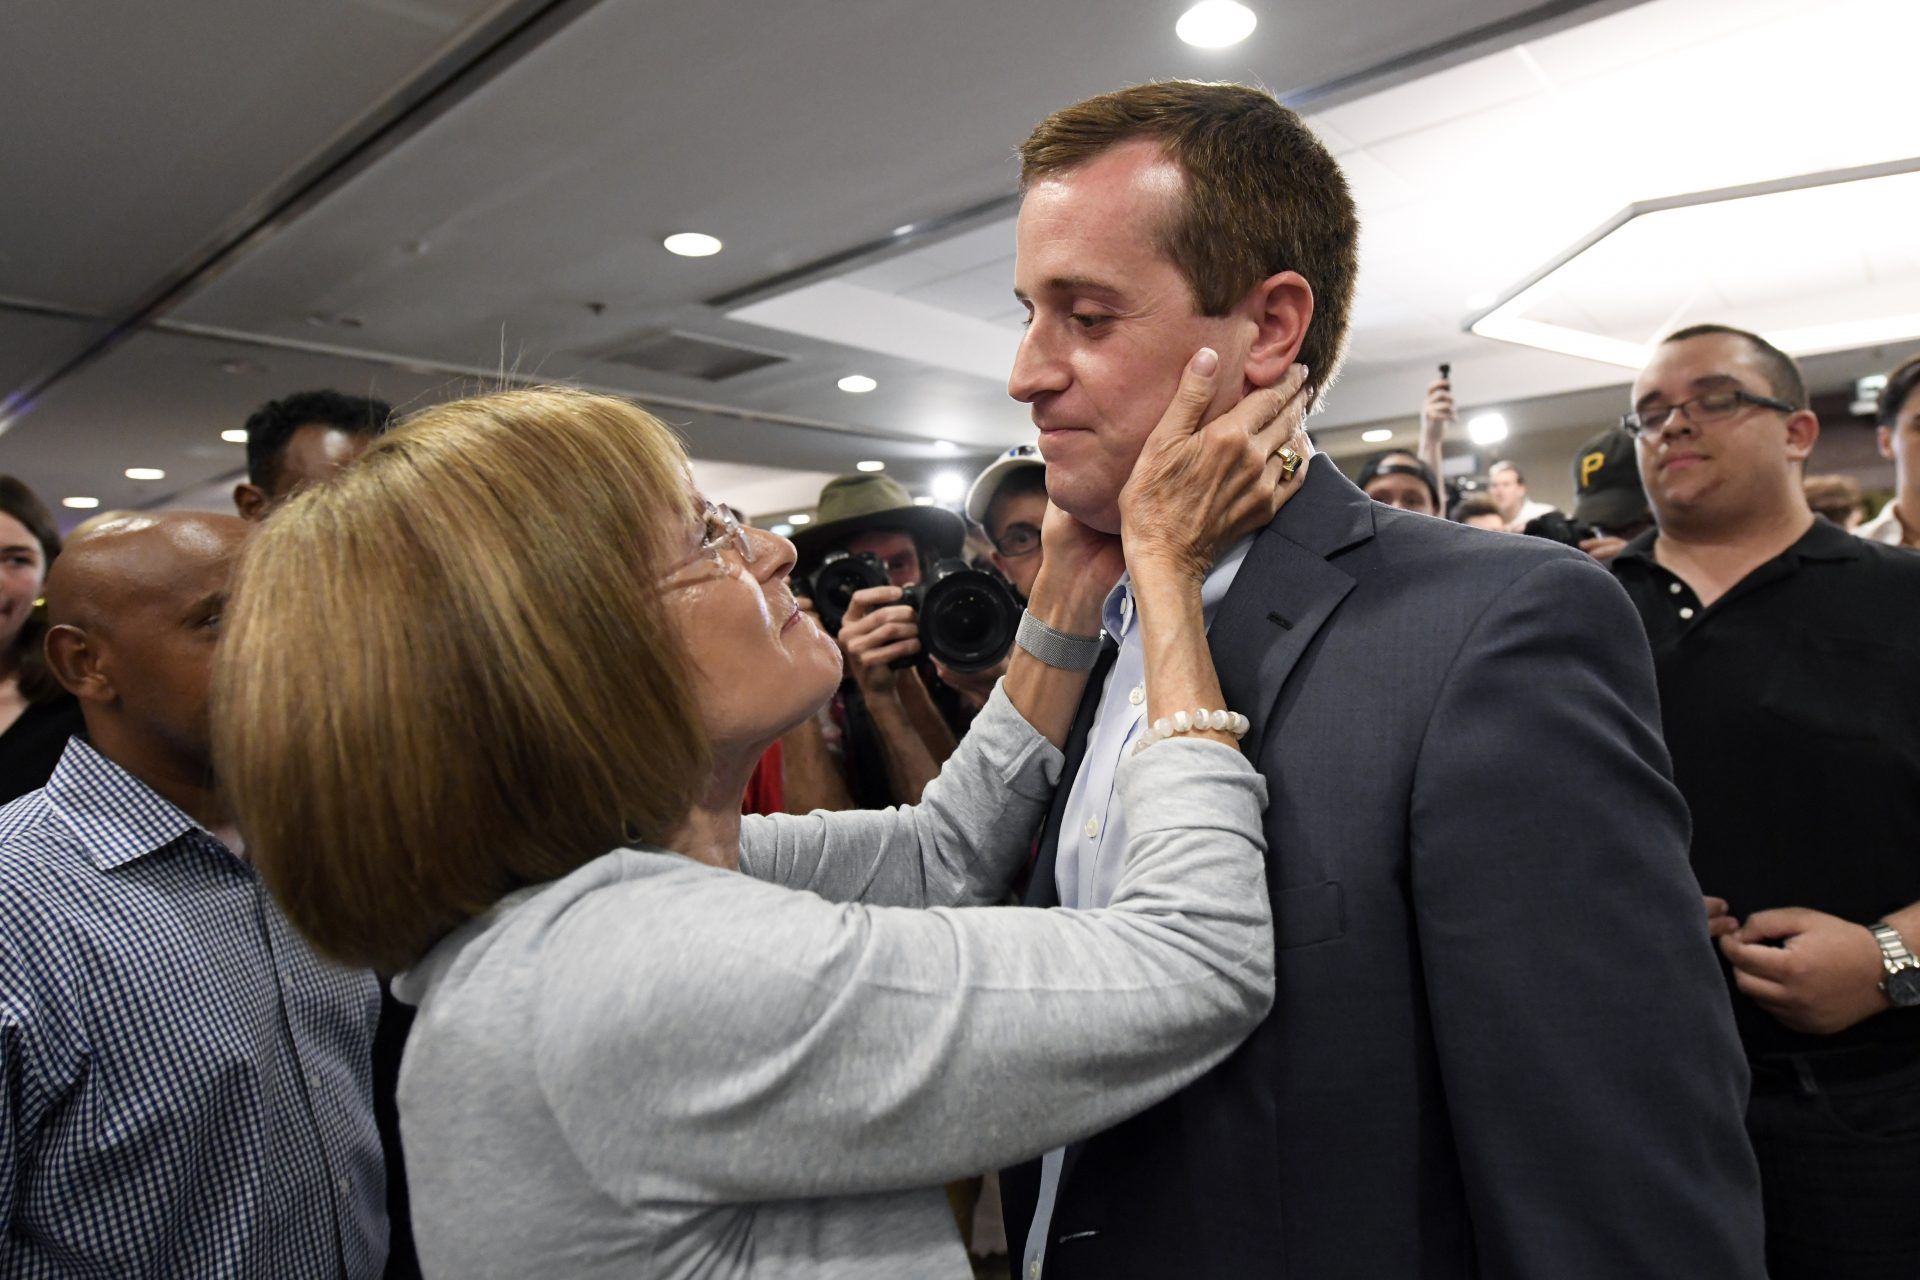 Mattye Silverman of Charlotte, consoles Democrat Dan McCready after he lost a special election for United States Congress in North Carolina's 9th Congressional District to Republican, Dan Bishop, Tuesday, Sept. 10, 2019, in Charlotte, N.C.